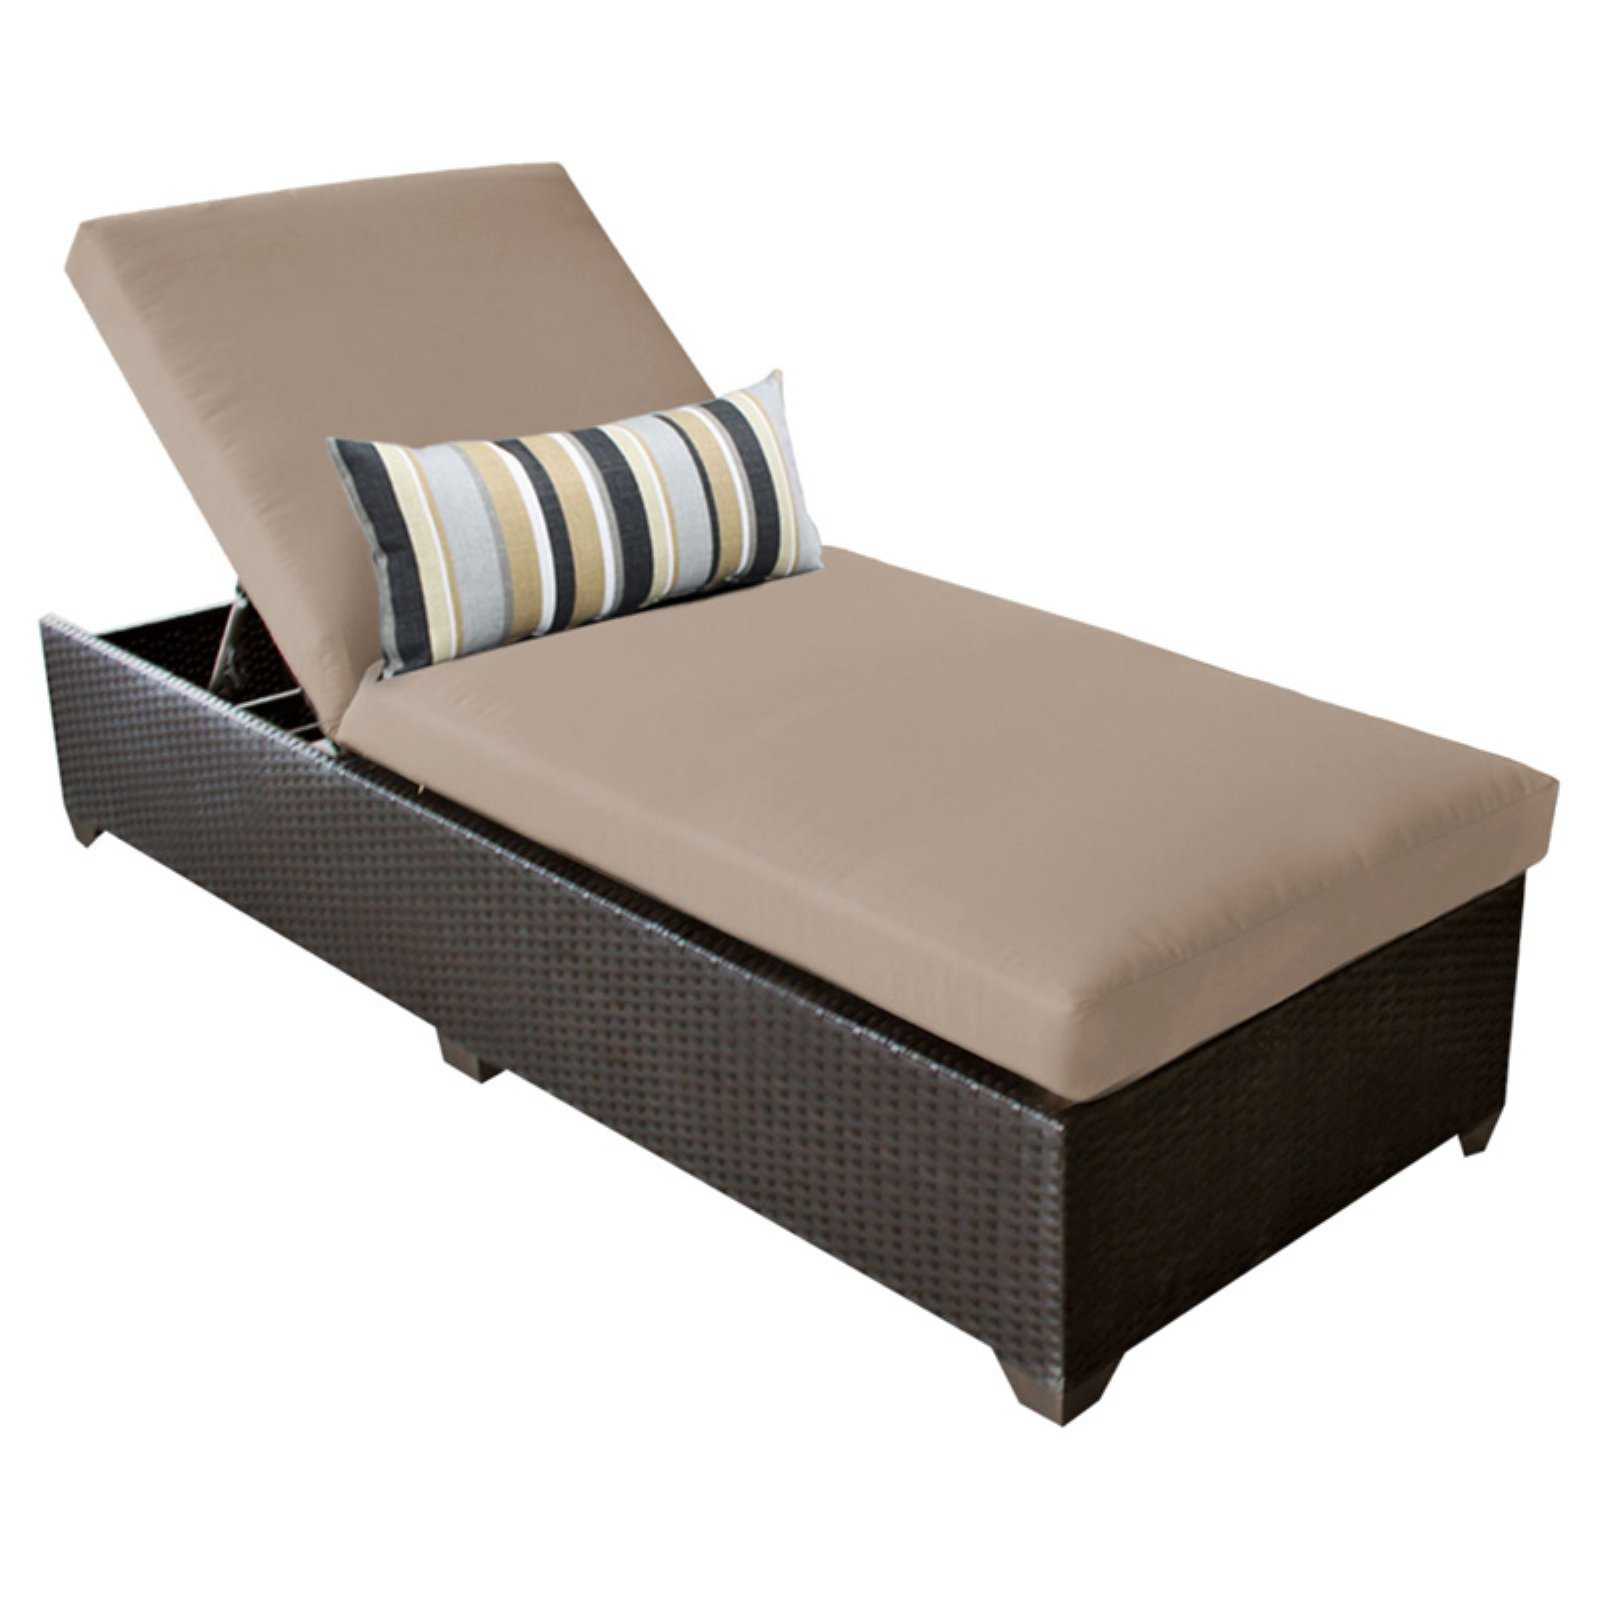 TK Classics Belle Wicker Outdoor Chaise Lounge